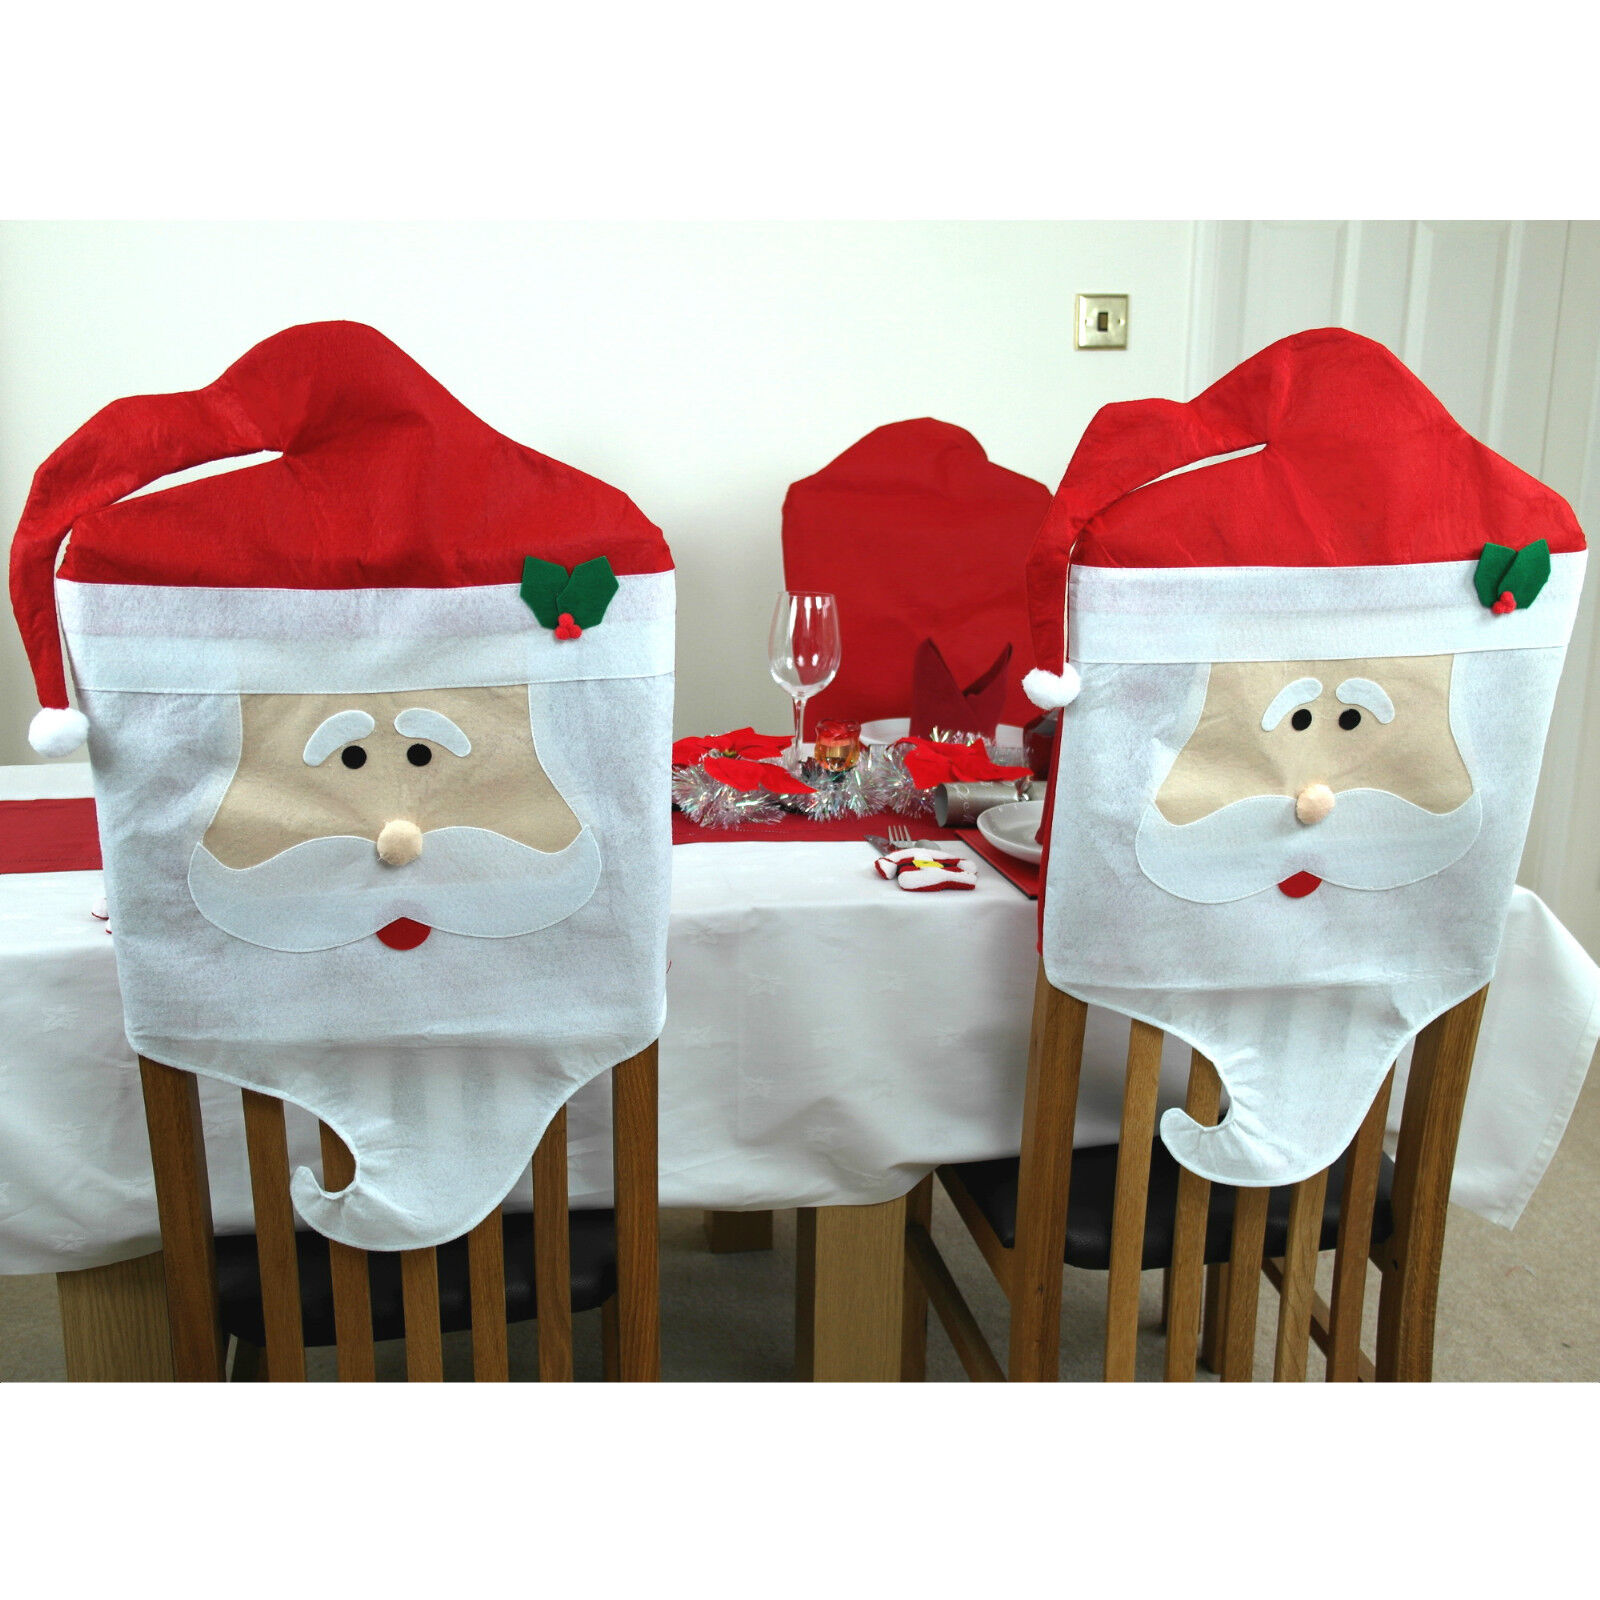 dining chair covers for christmas daycare table and set 2 x santa father decorations